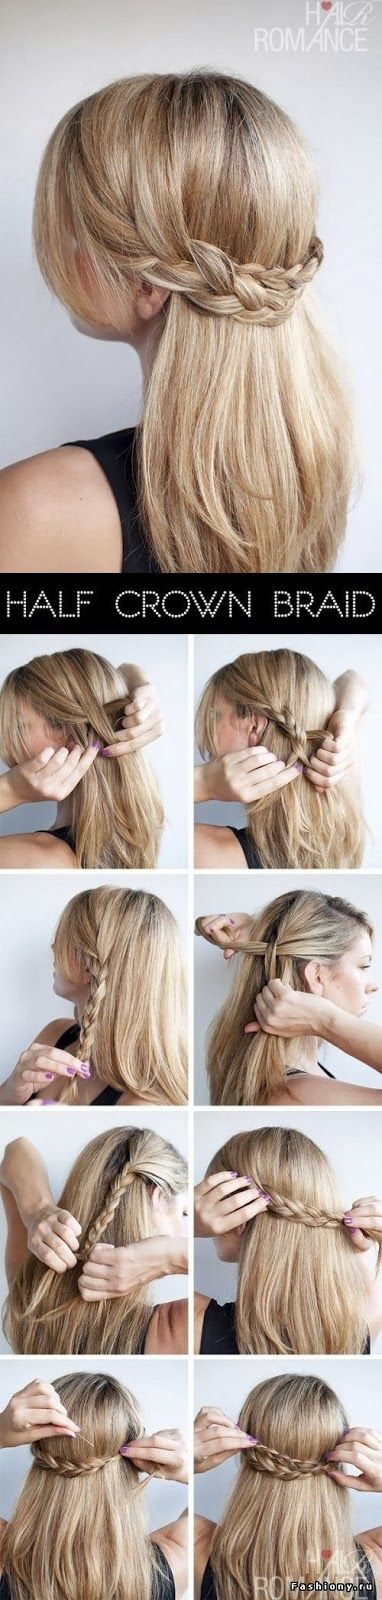 Half crown braid ~ DIY Everyday Hairstyles School Step by step ~ I love it:)